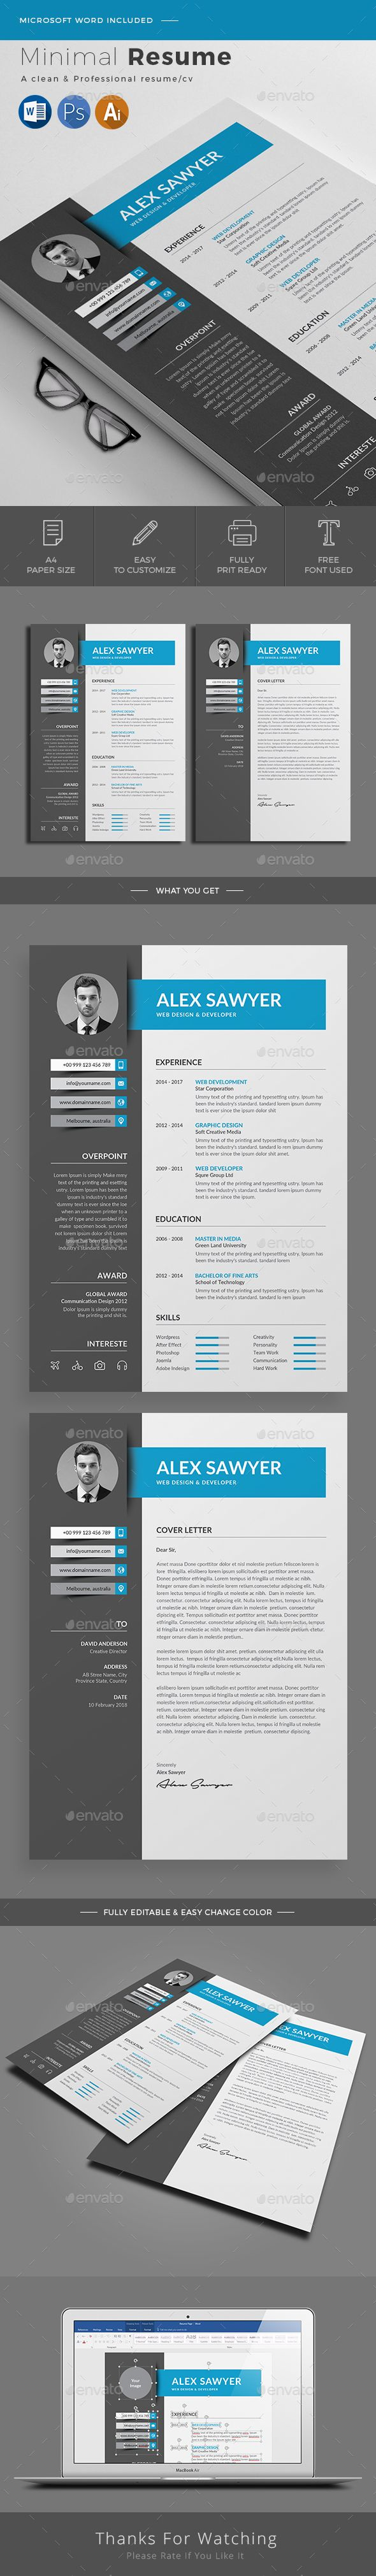 Resume Clean & Modern Resume/cv template to help you land that great job. The flexible page designs are easy to use and customize, so you can quickly tailor-make your resume for any opportunity.